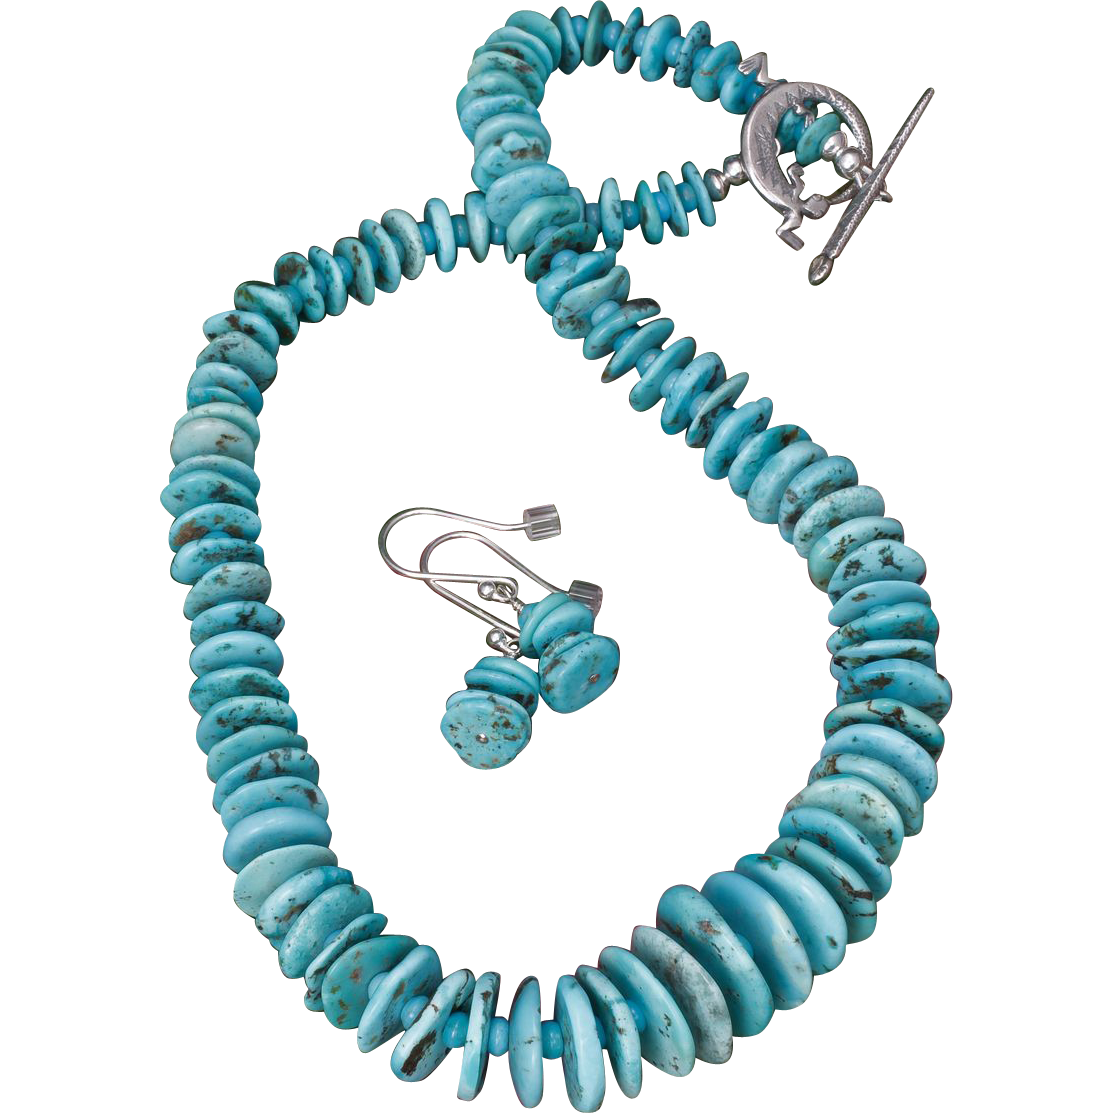 Turquoise Necklace of Graduated Discs with Earrings